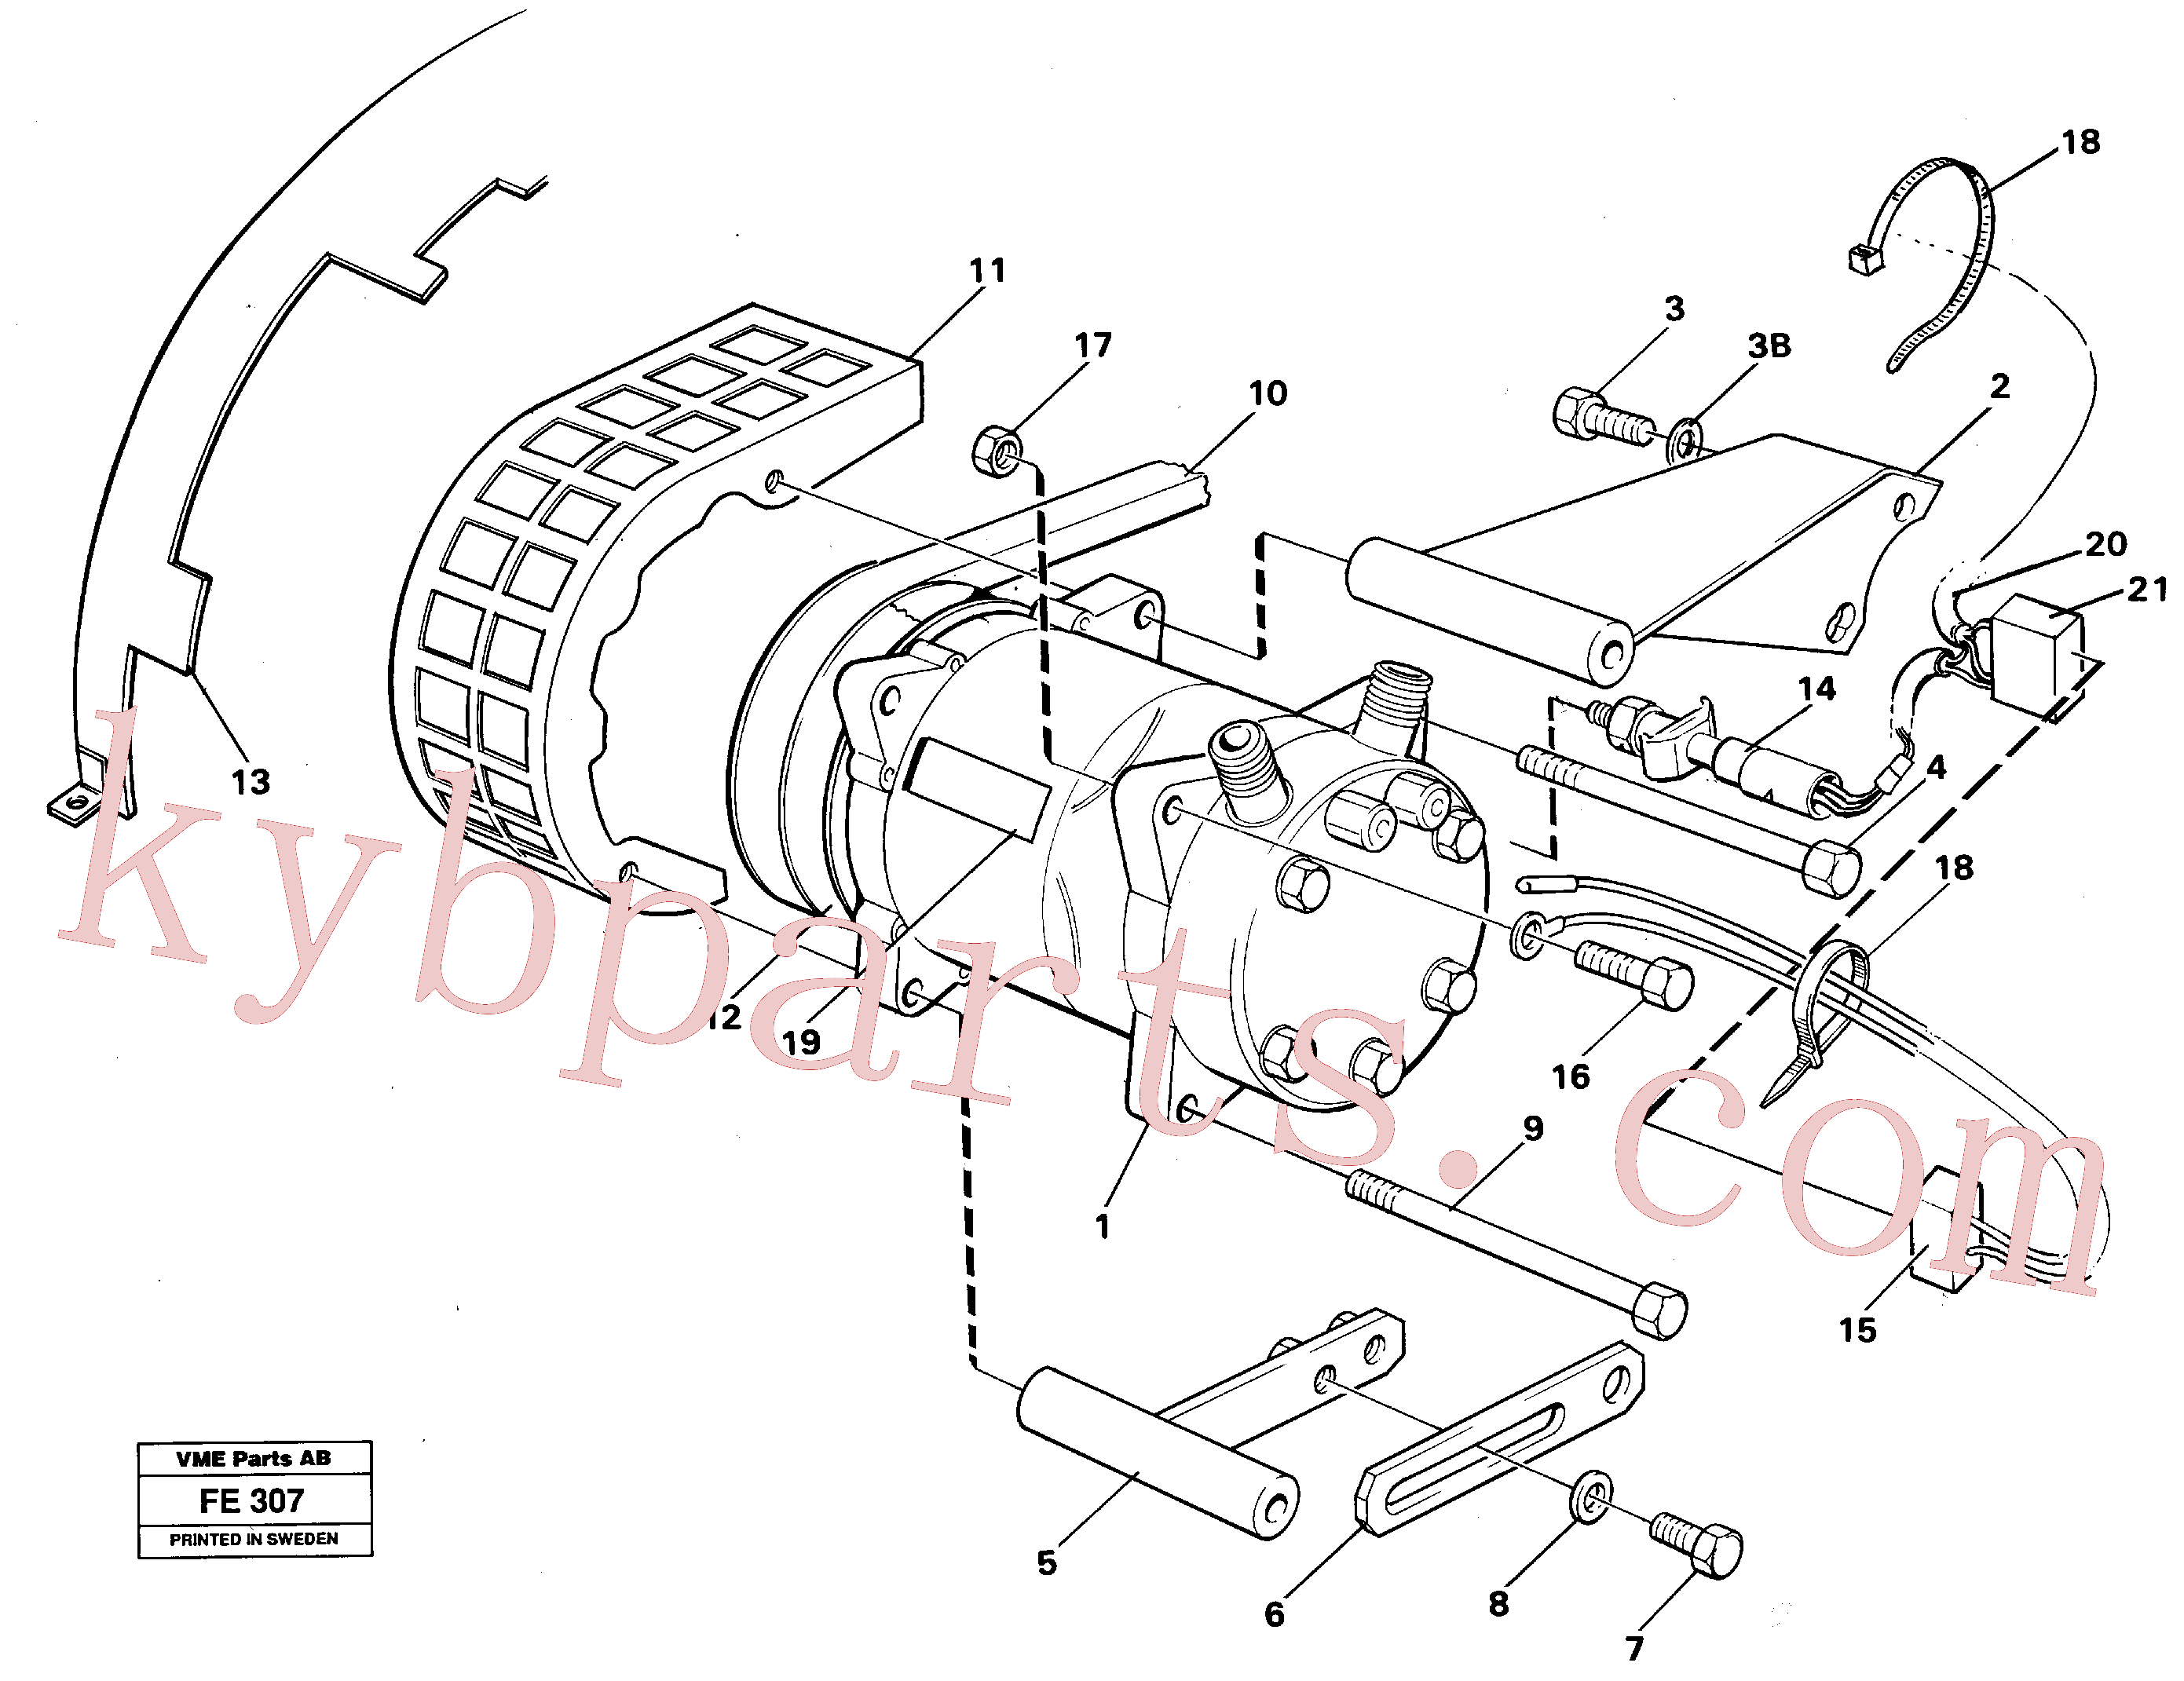 VOE14248863 for Volvo Air-compressor with fitting parts(FE307 assembly)